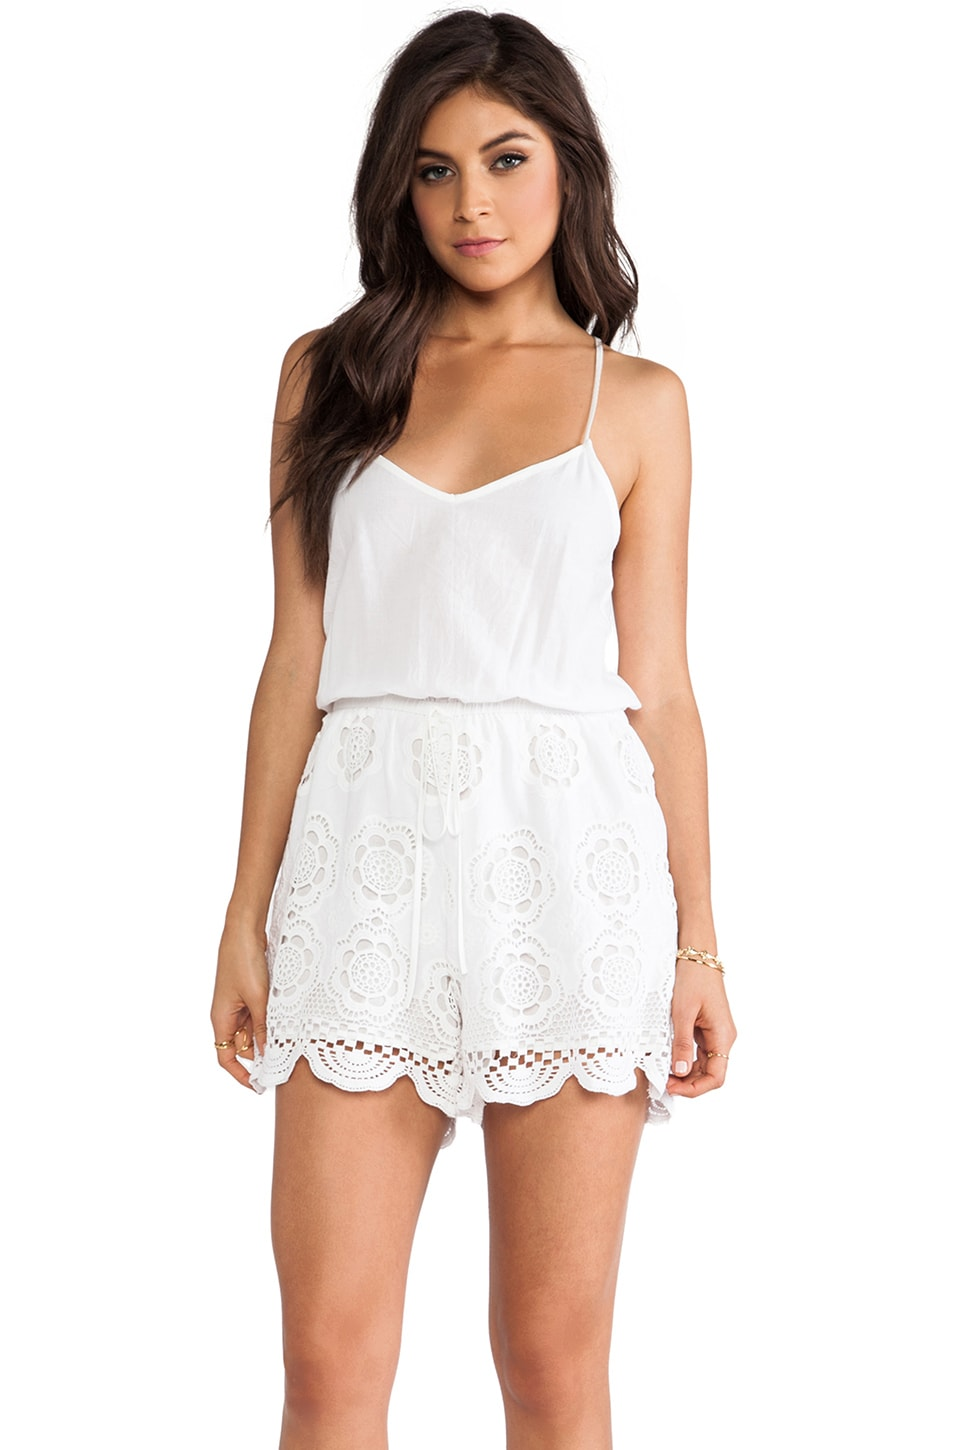 LIV Racer Back Romper in White